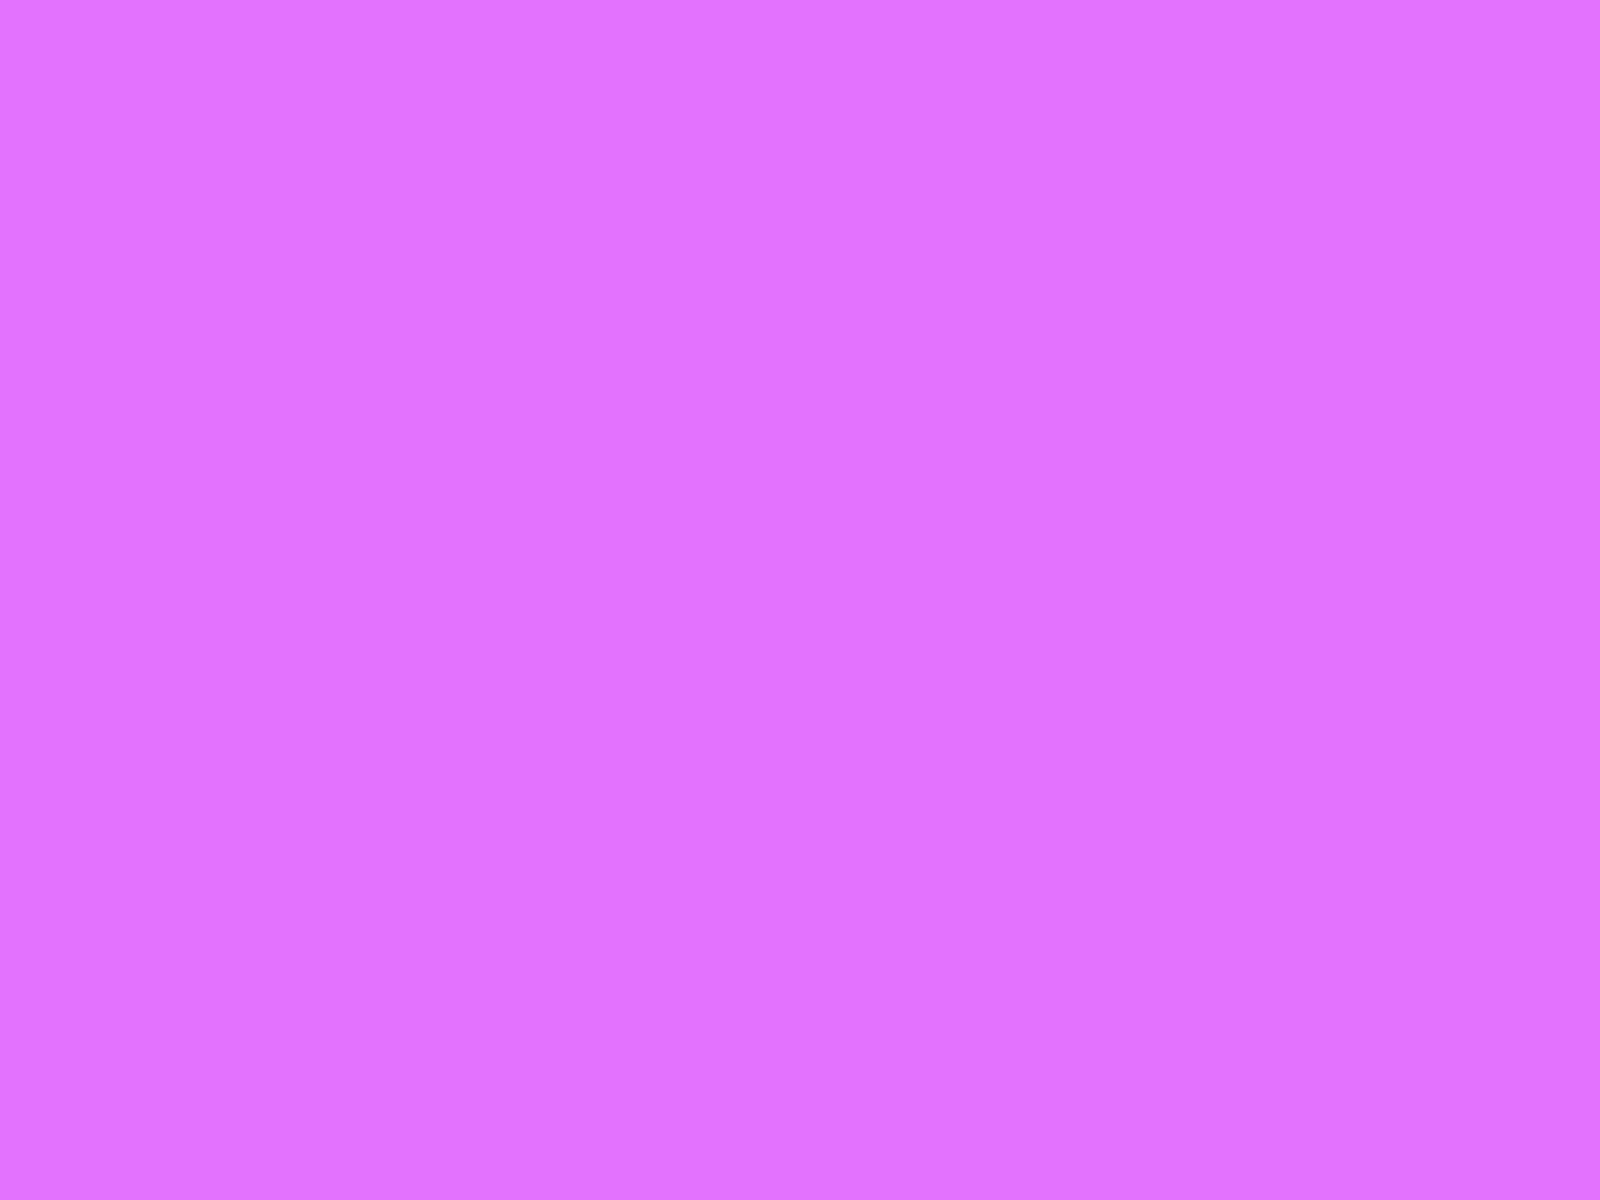 1600x1200 Heliotrope Solid Color Background